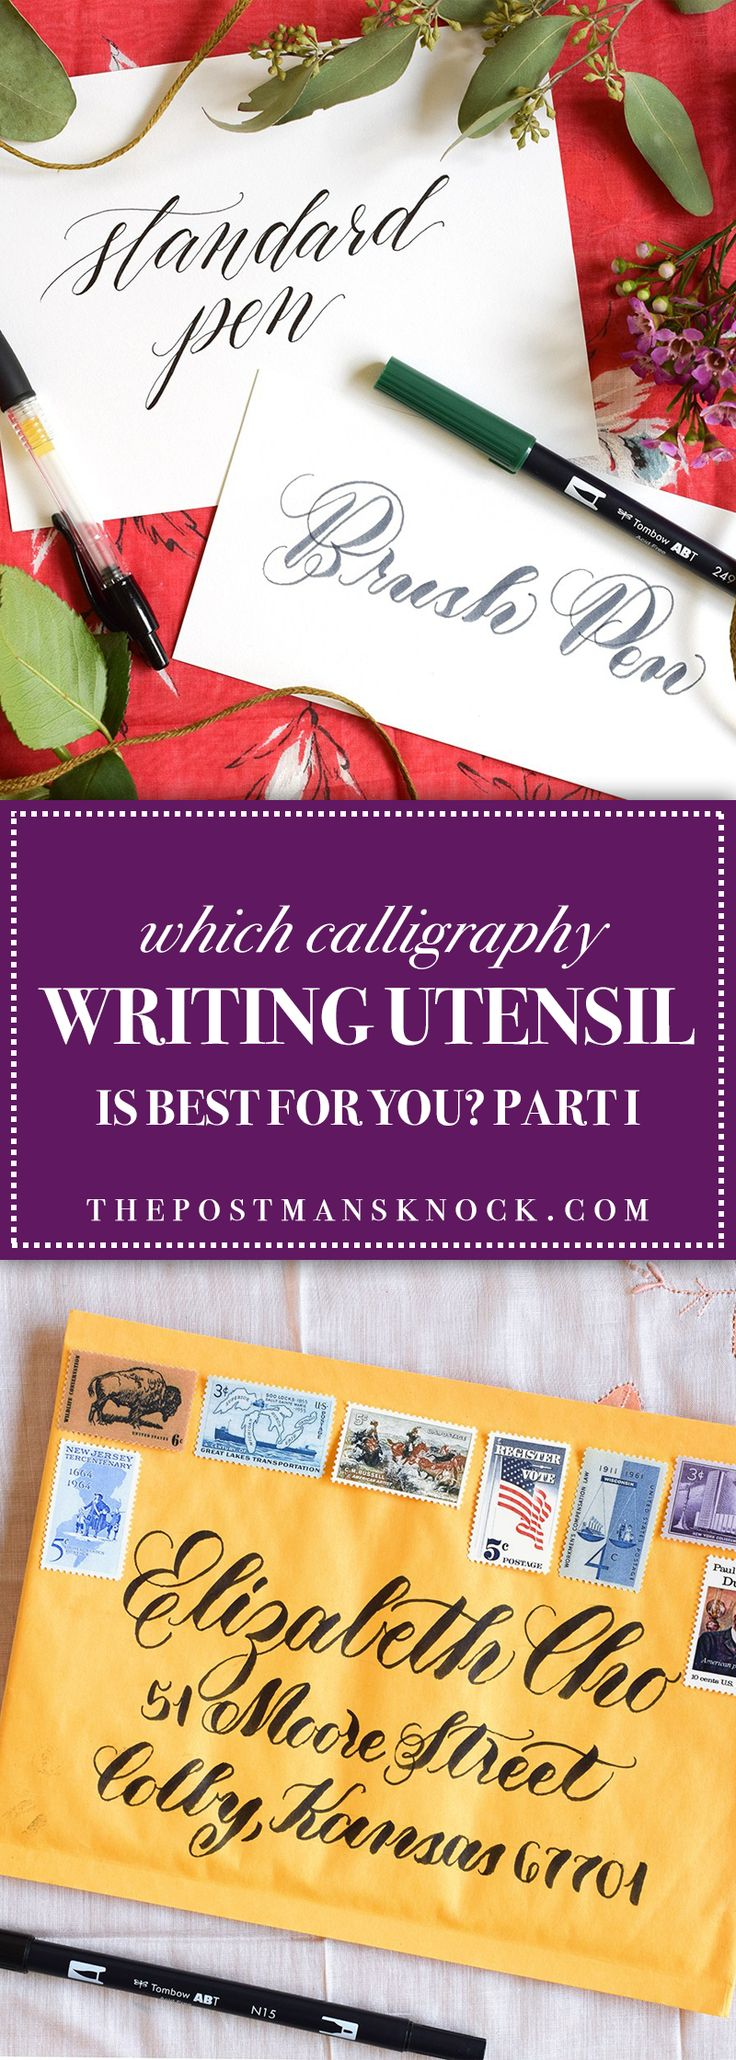 In this blog post, I hope to unite you with your perfect calligraphy writing utensil. You'll learn about writing with regular pens as well as brush pens!